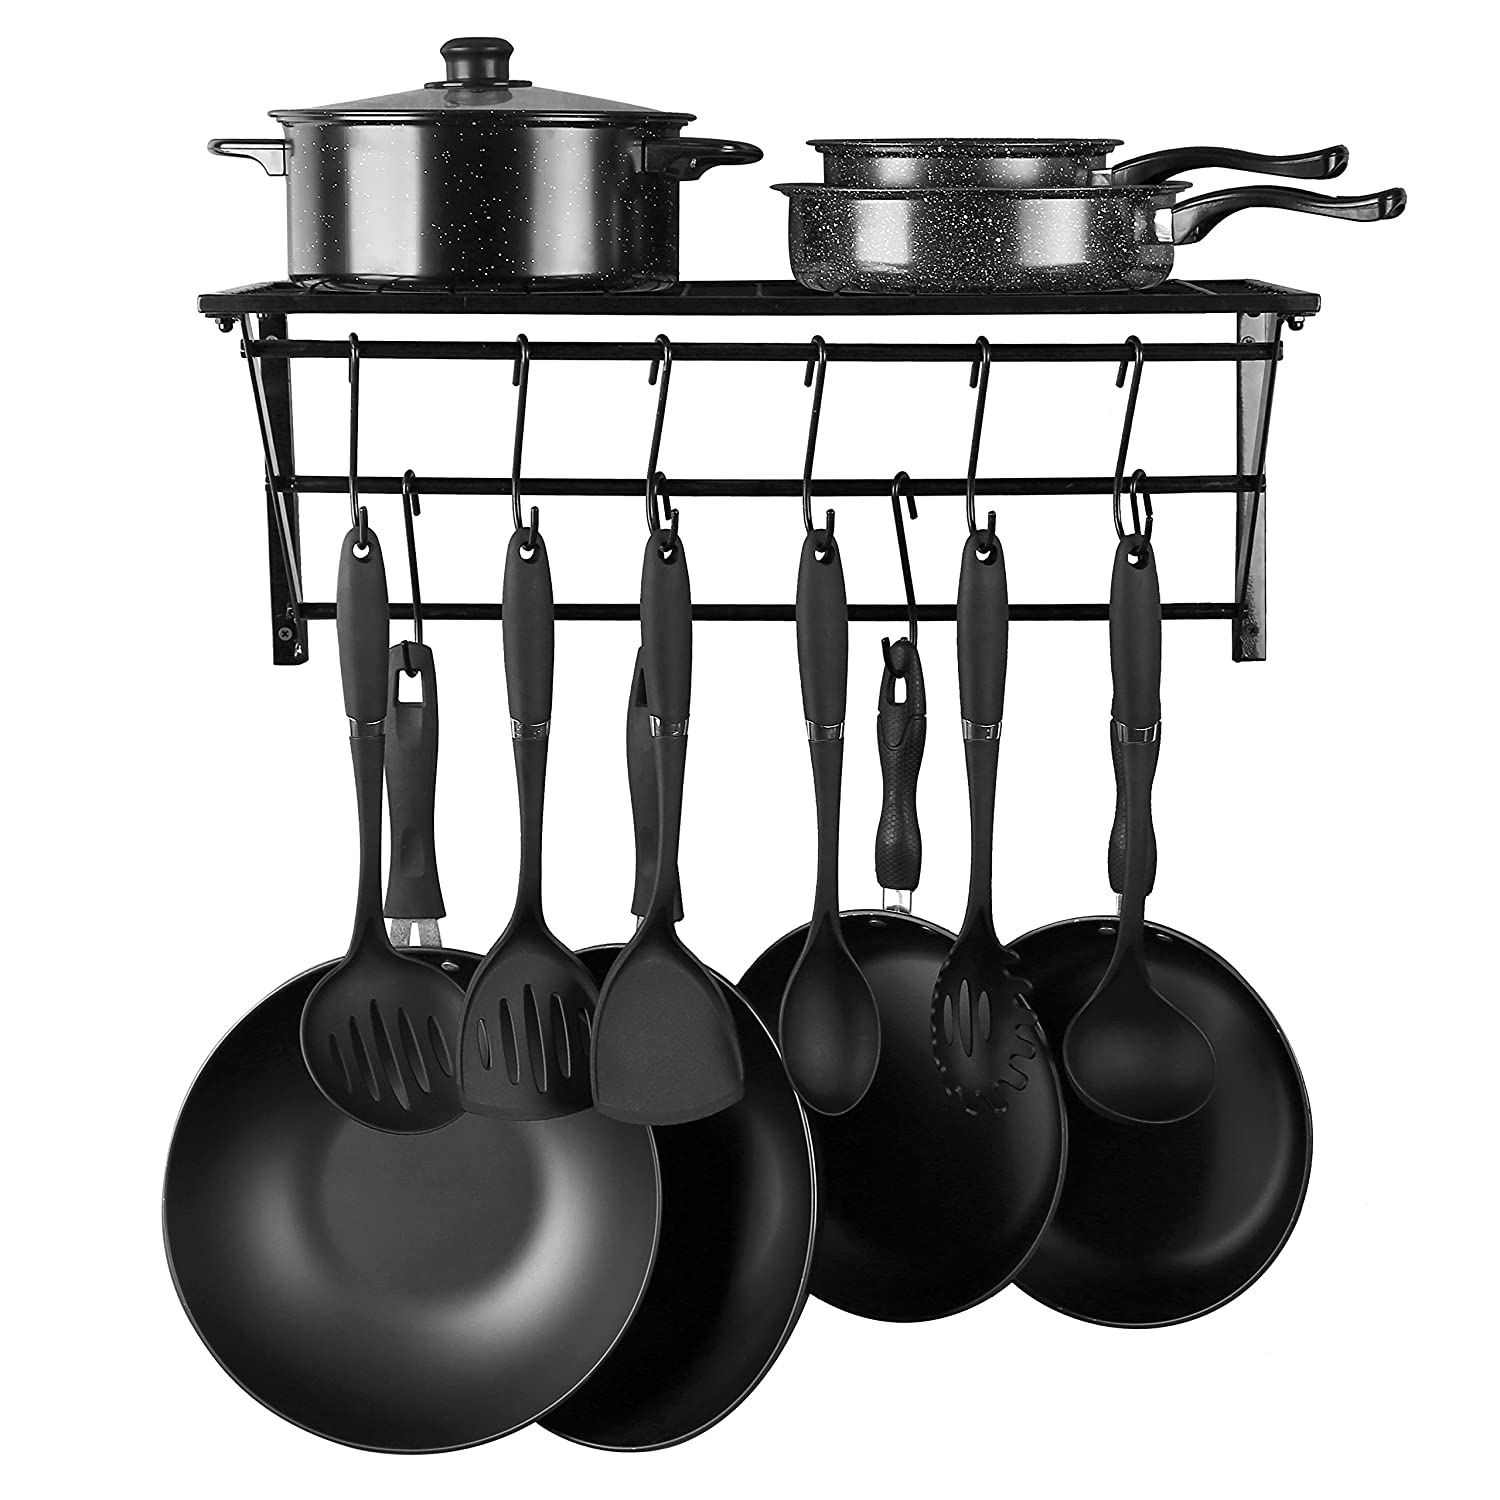 Kitchen Wall Mounted Pot Rack,Pan Lid Shelf,Cookware Storage with 10 Hooks,Black … Black …